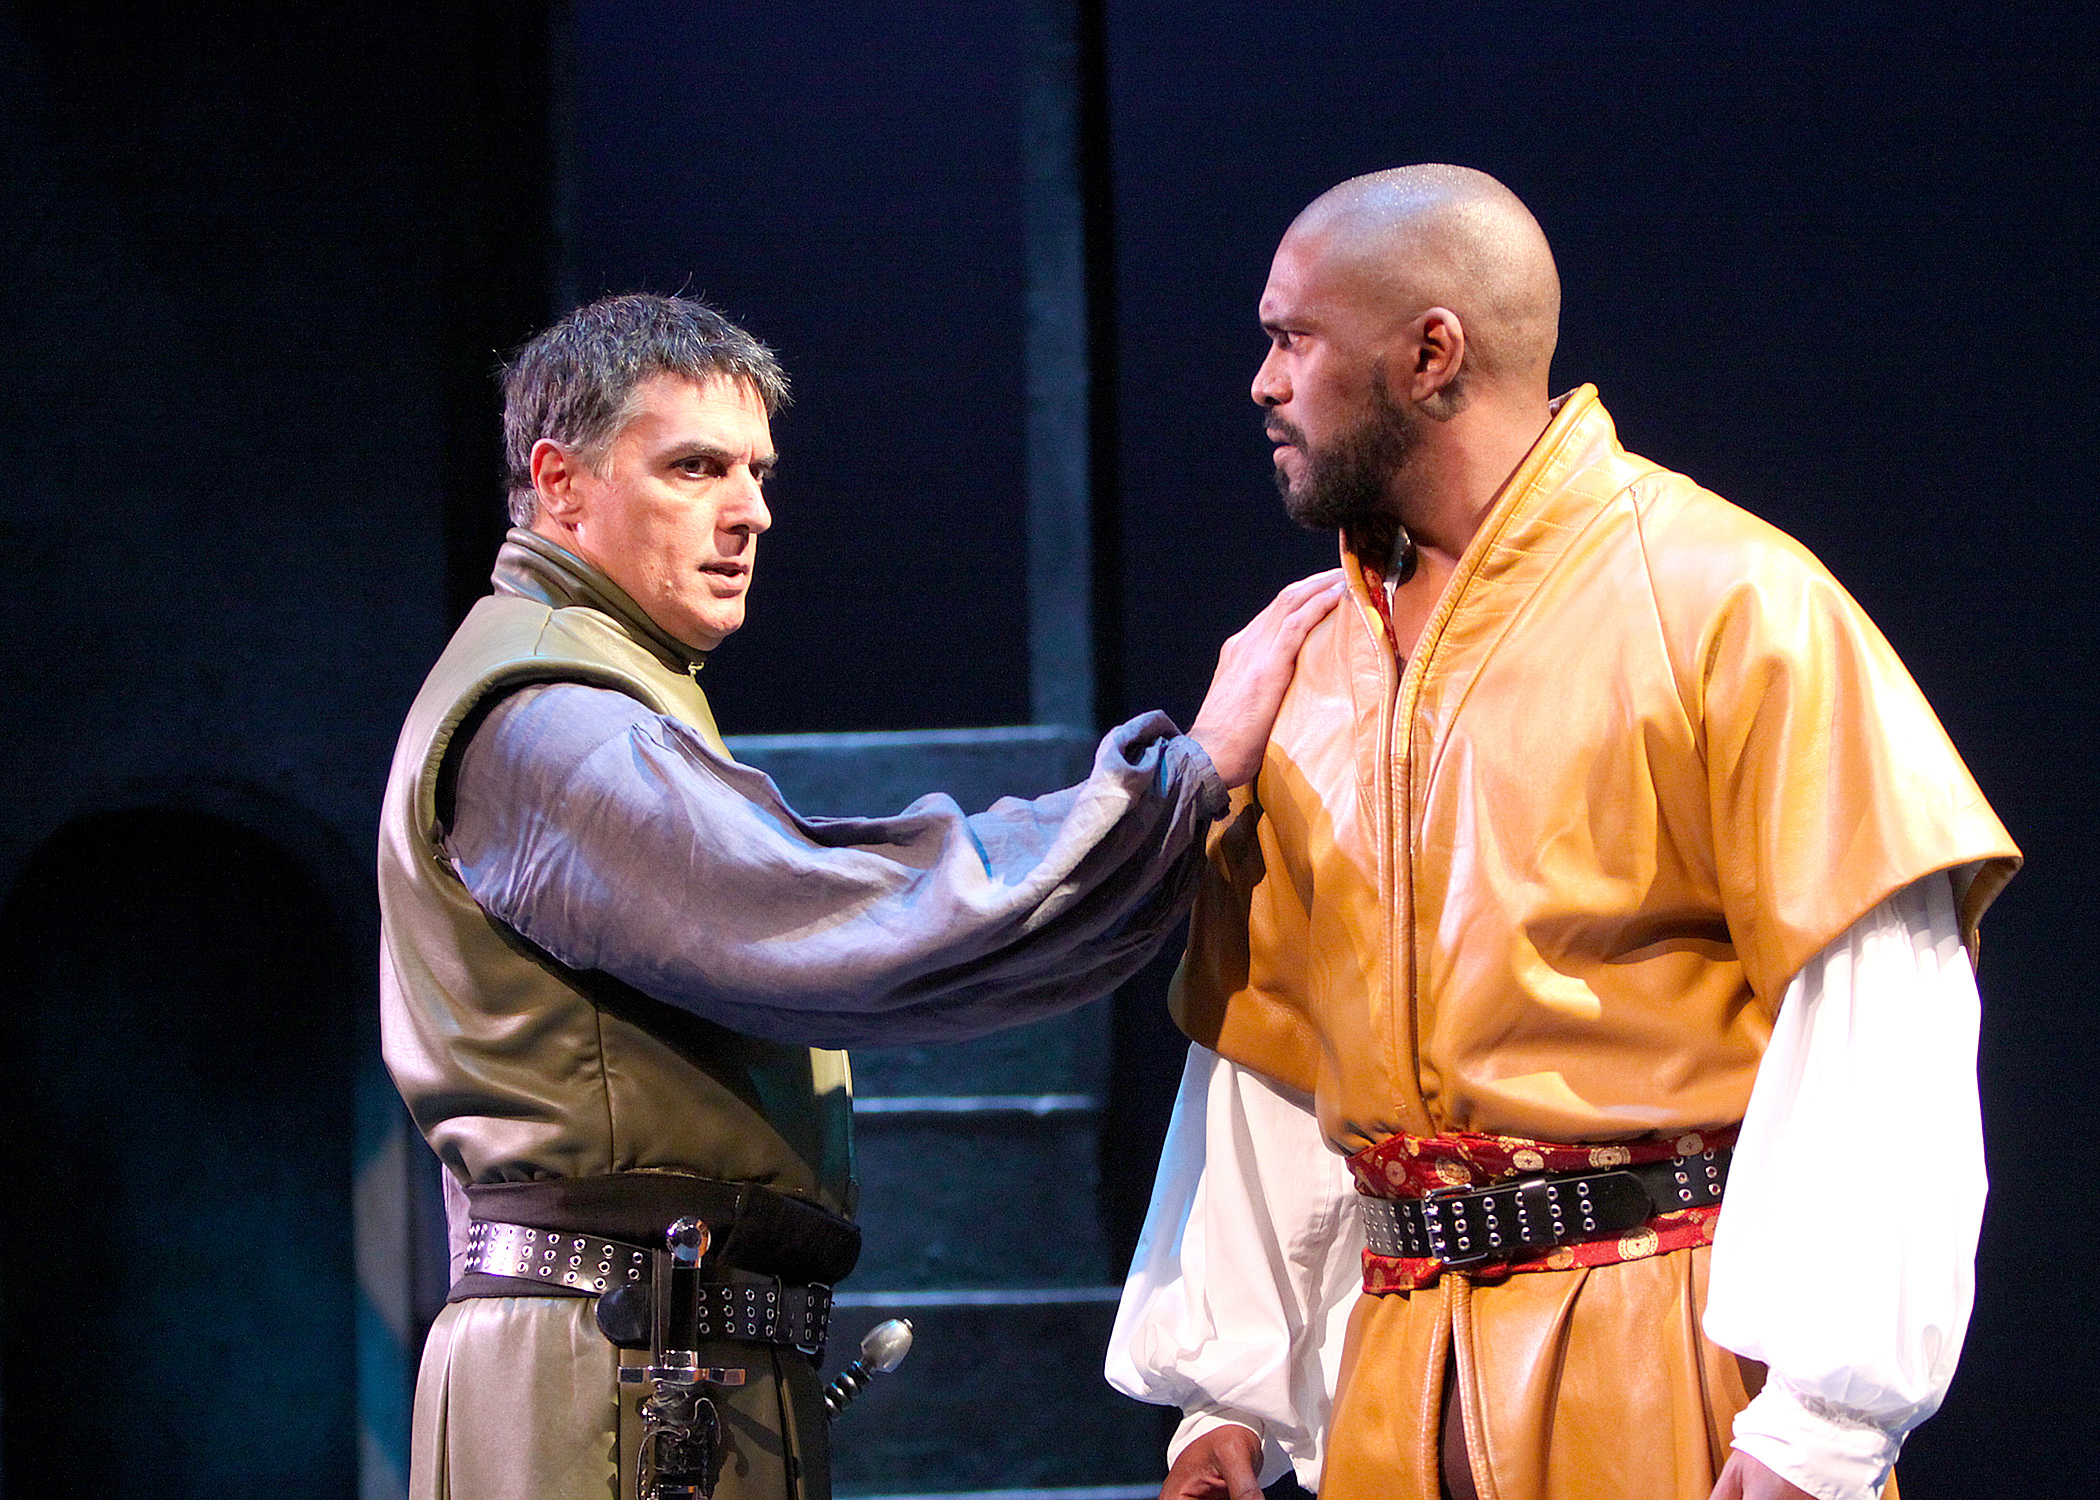 the fall of othello These productions tended to emphasize the nobility and love of othello and desdemona, and made their fall seem more tragic and ill-deserved taken from the norton shakespeare, introduction to othello by walter cohen.